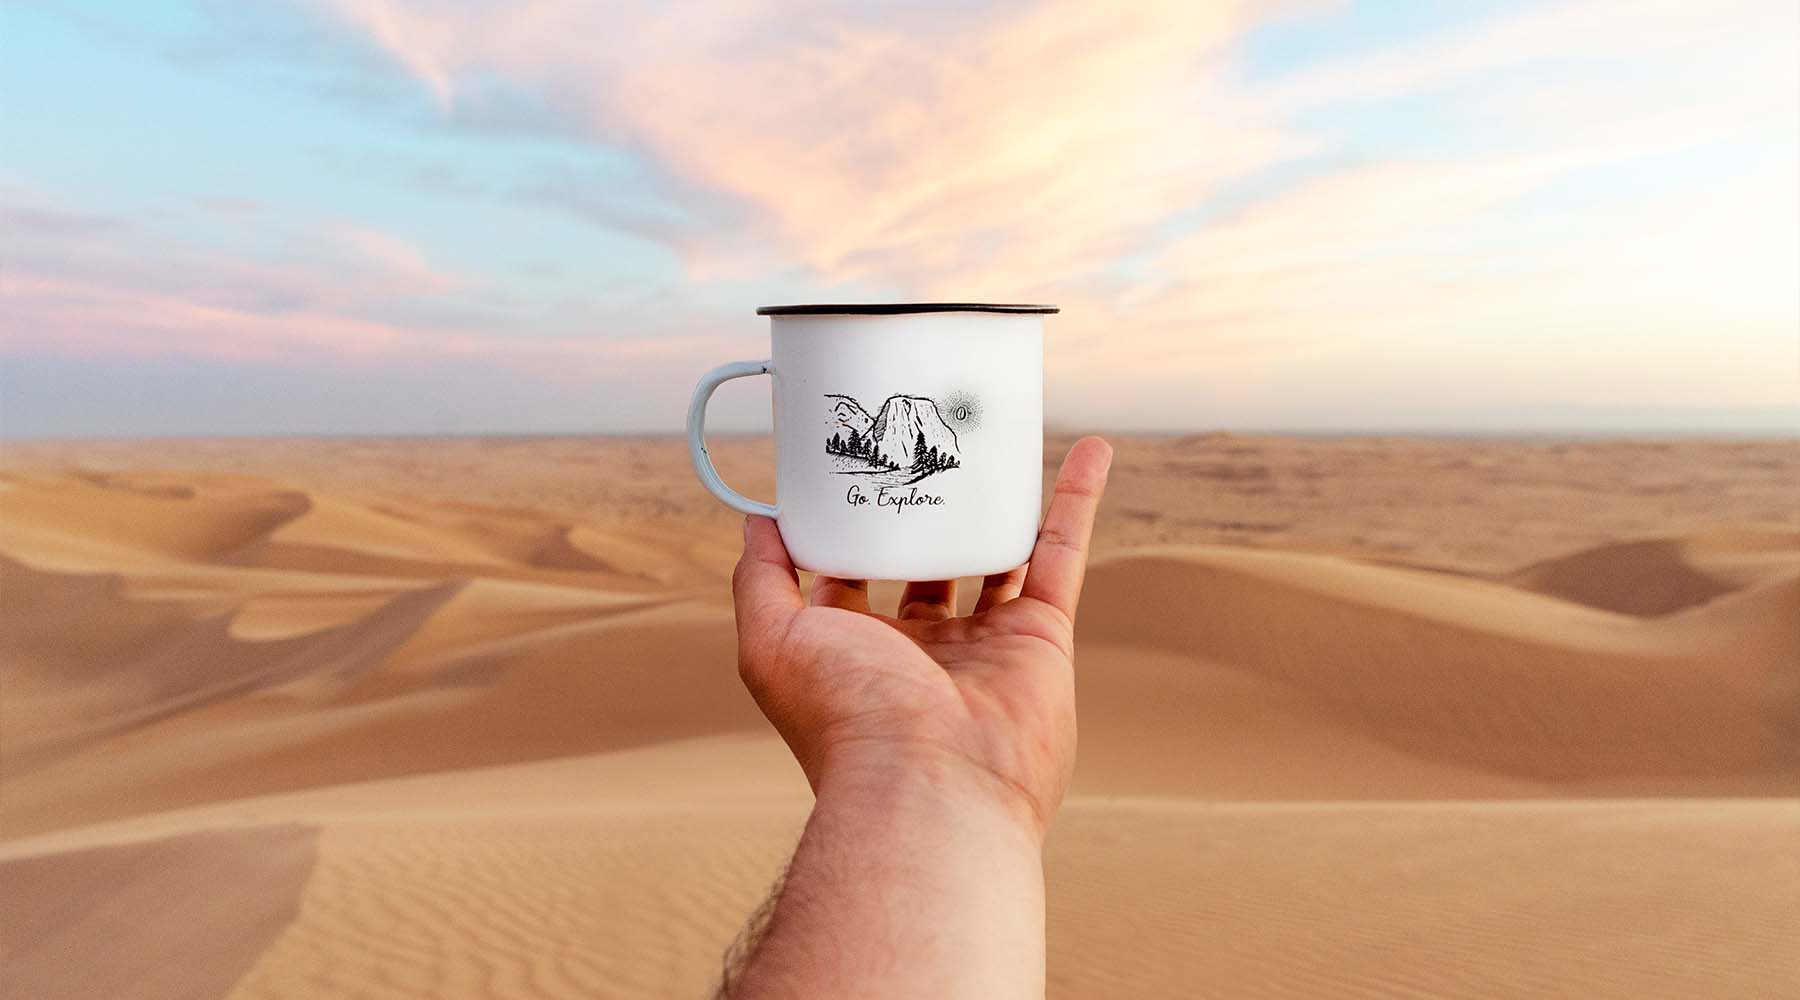 Glamis sand dunes desert with a seven seas roasting mug in the foreground with an hand holding it mid air.